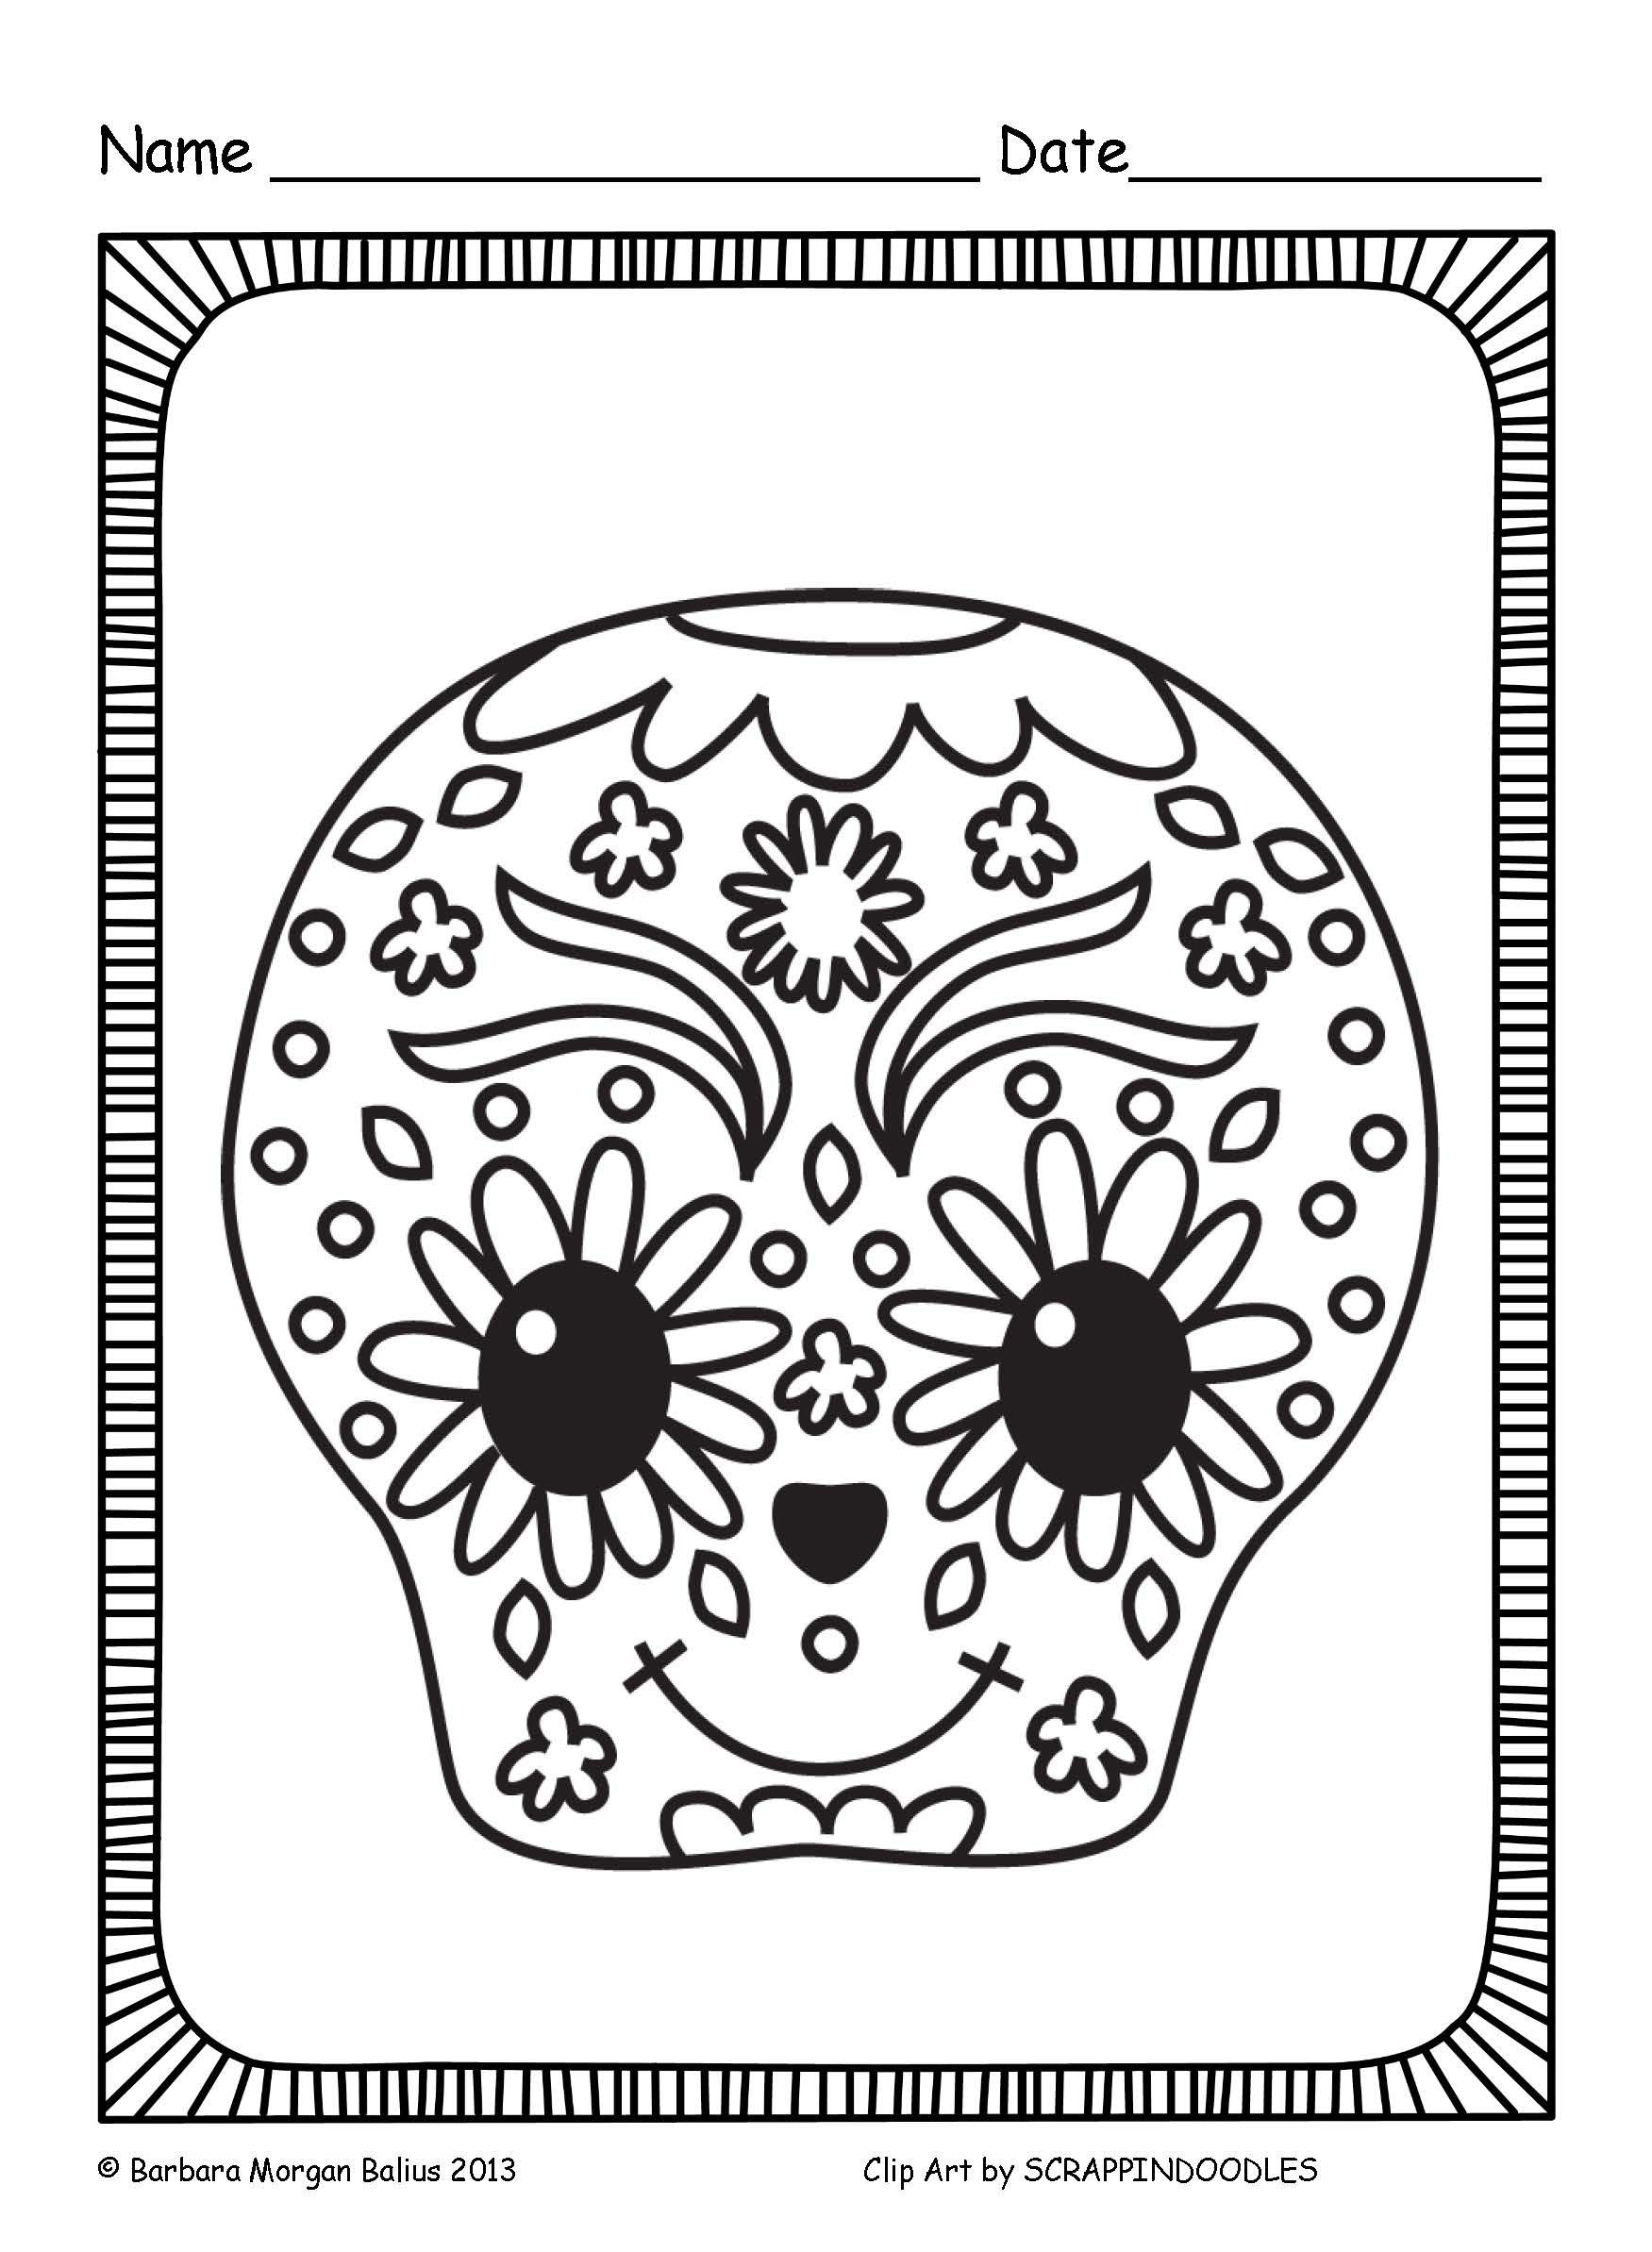 Worksheets Dia De Los Muertos Worksheets i can color dia de los muertos coloring sheets school sheets